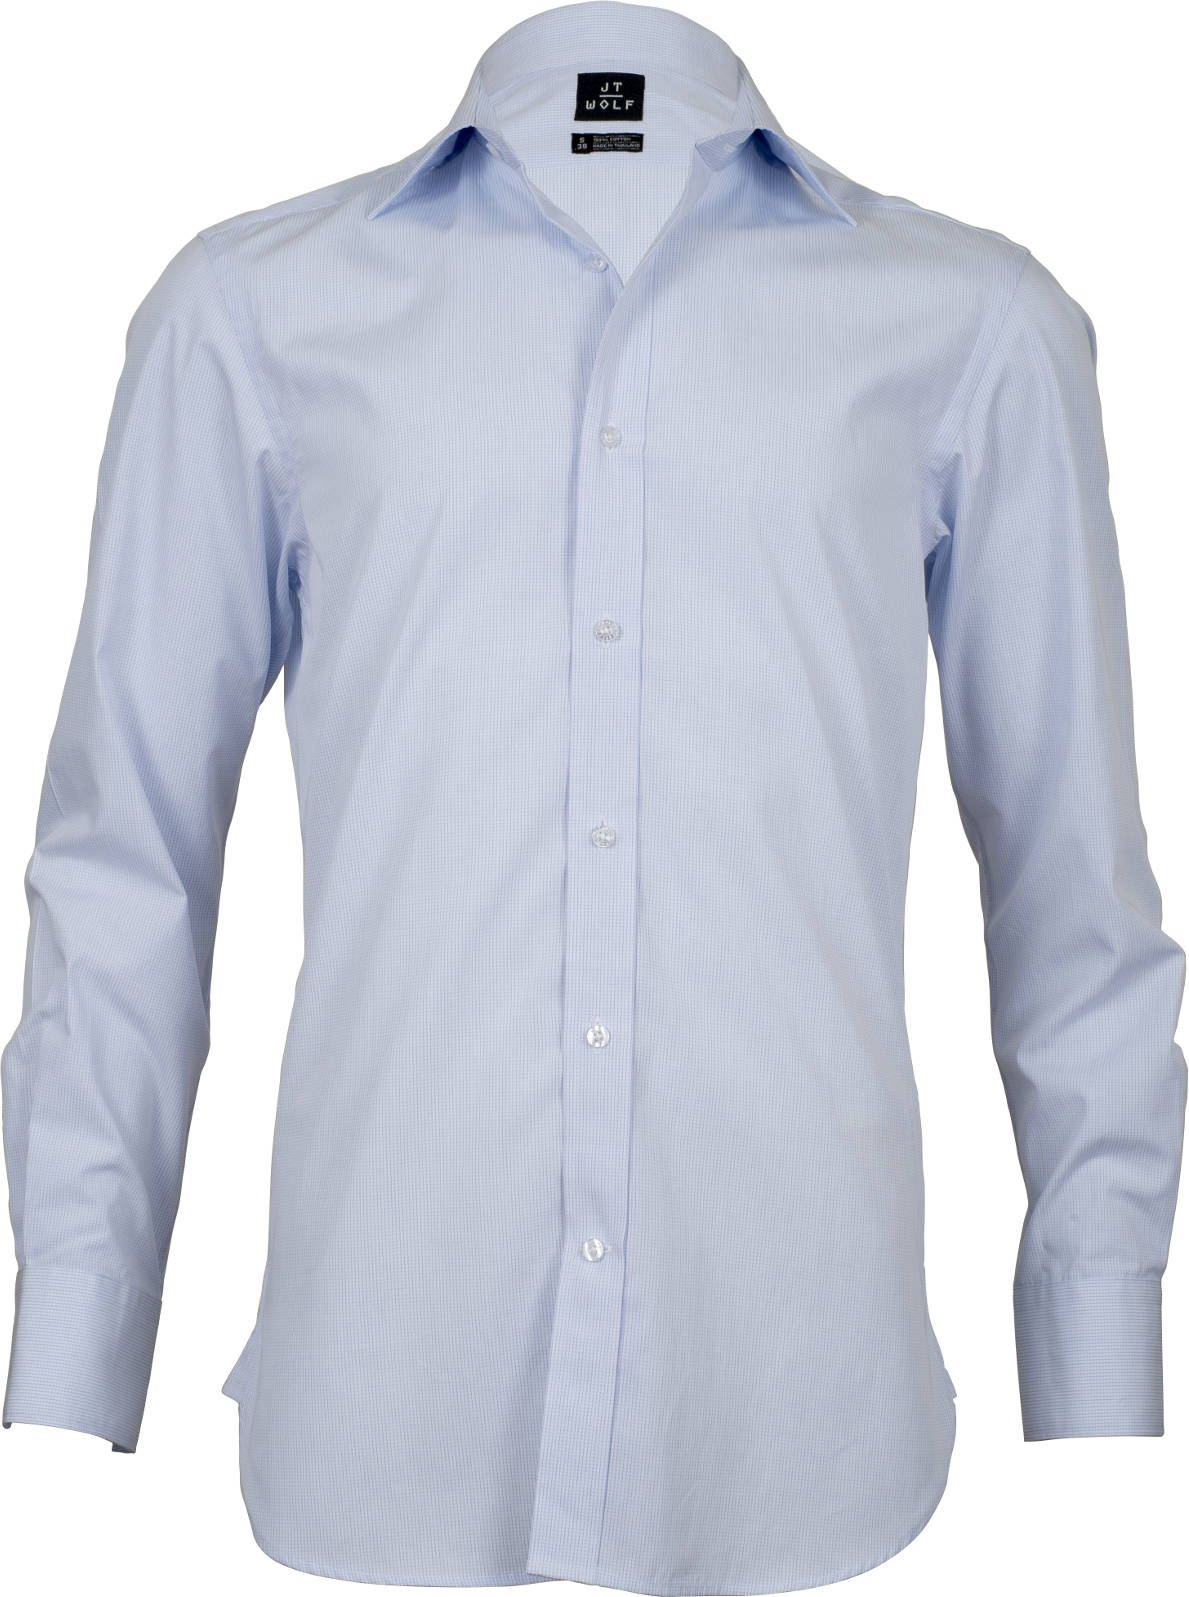 Slim fit pale blue check business shirts jt wolf for Slim fit check shirt